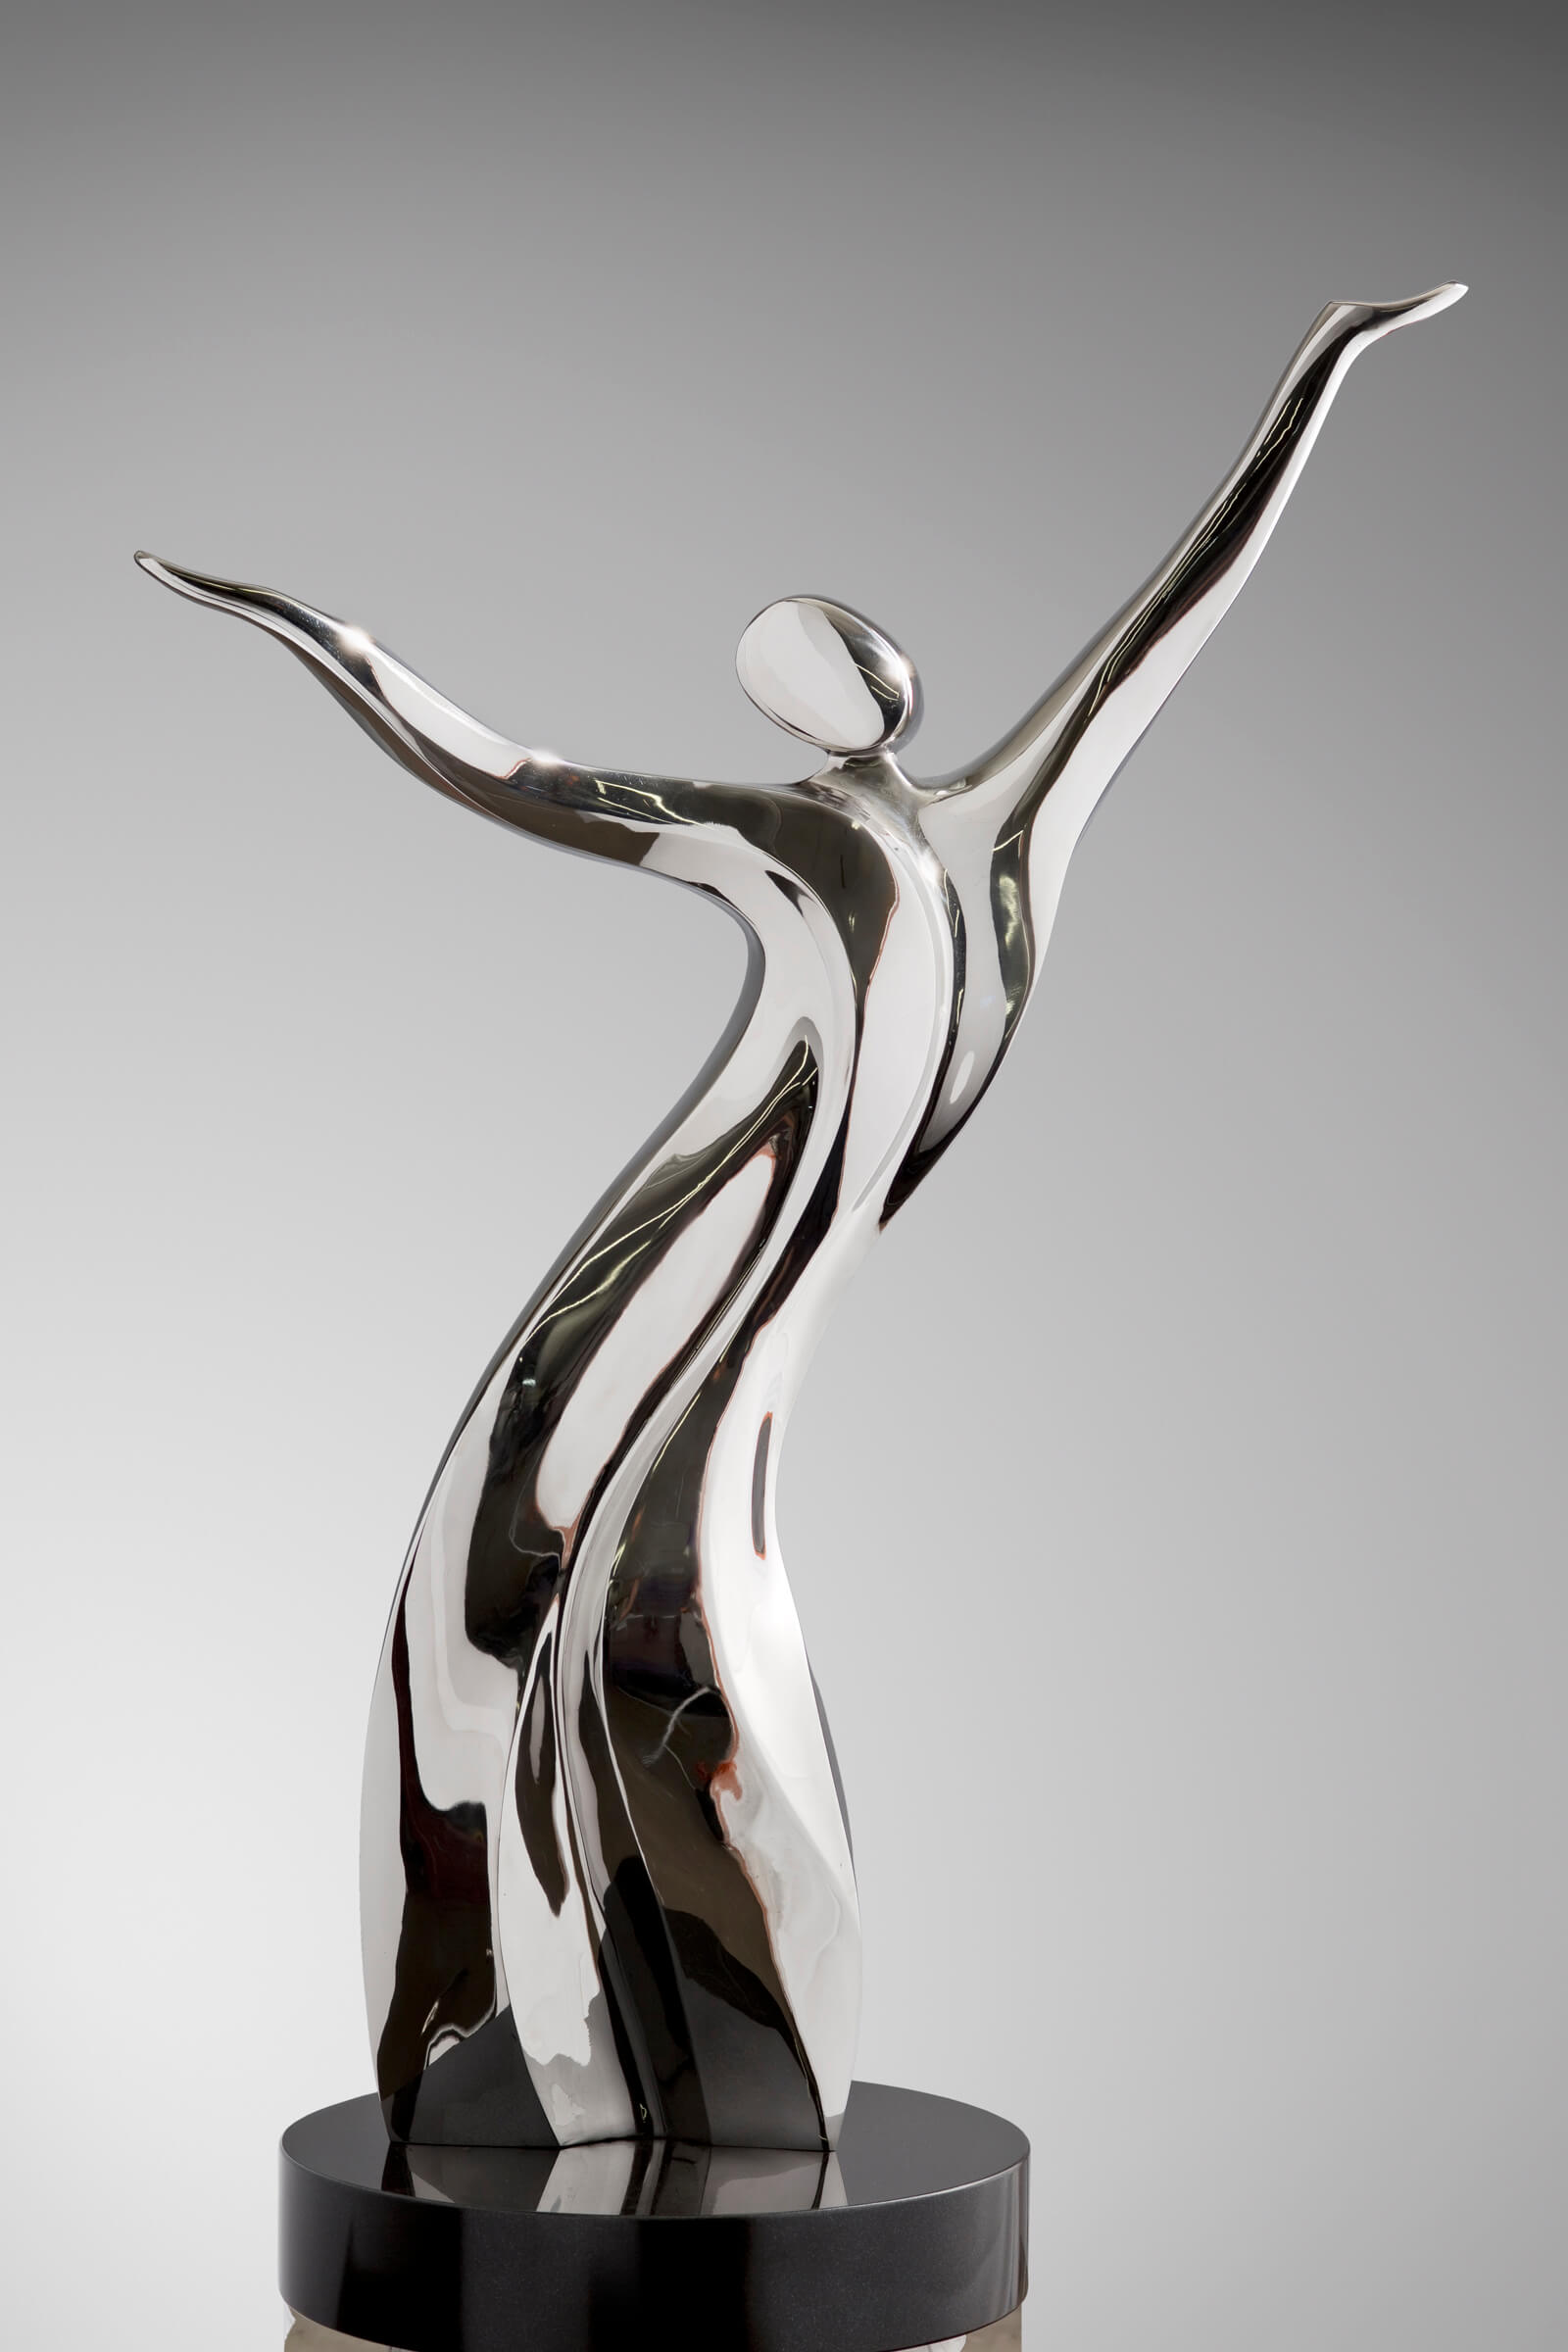 Figurative, Stainless Steel